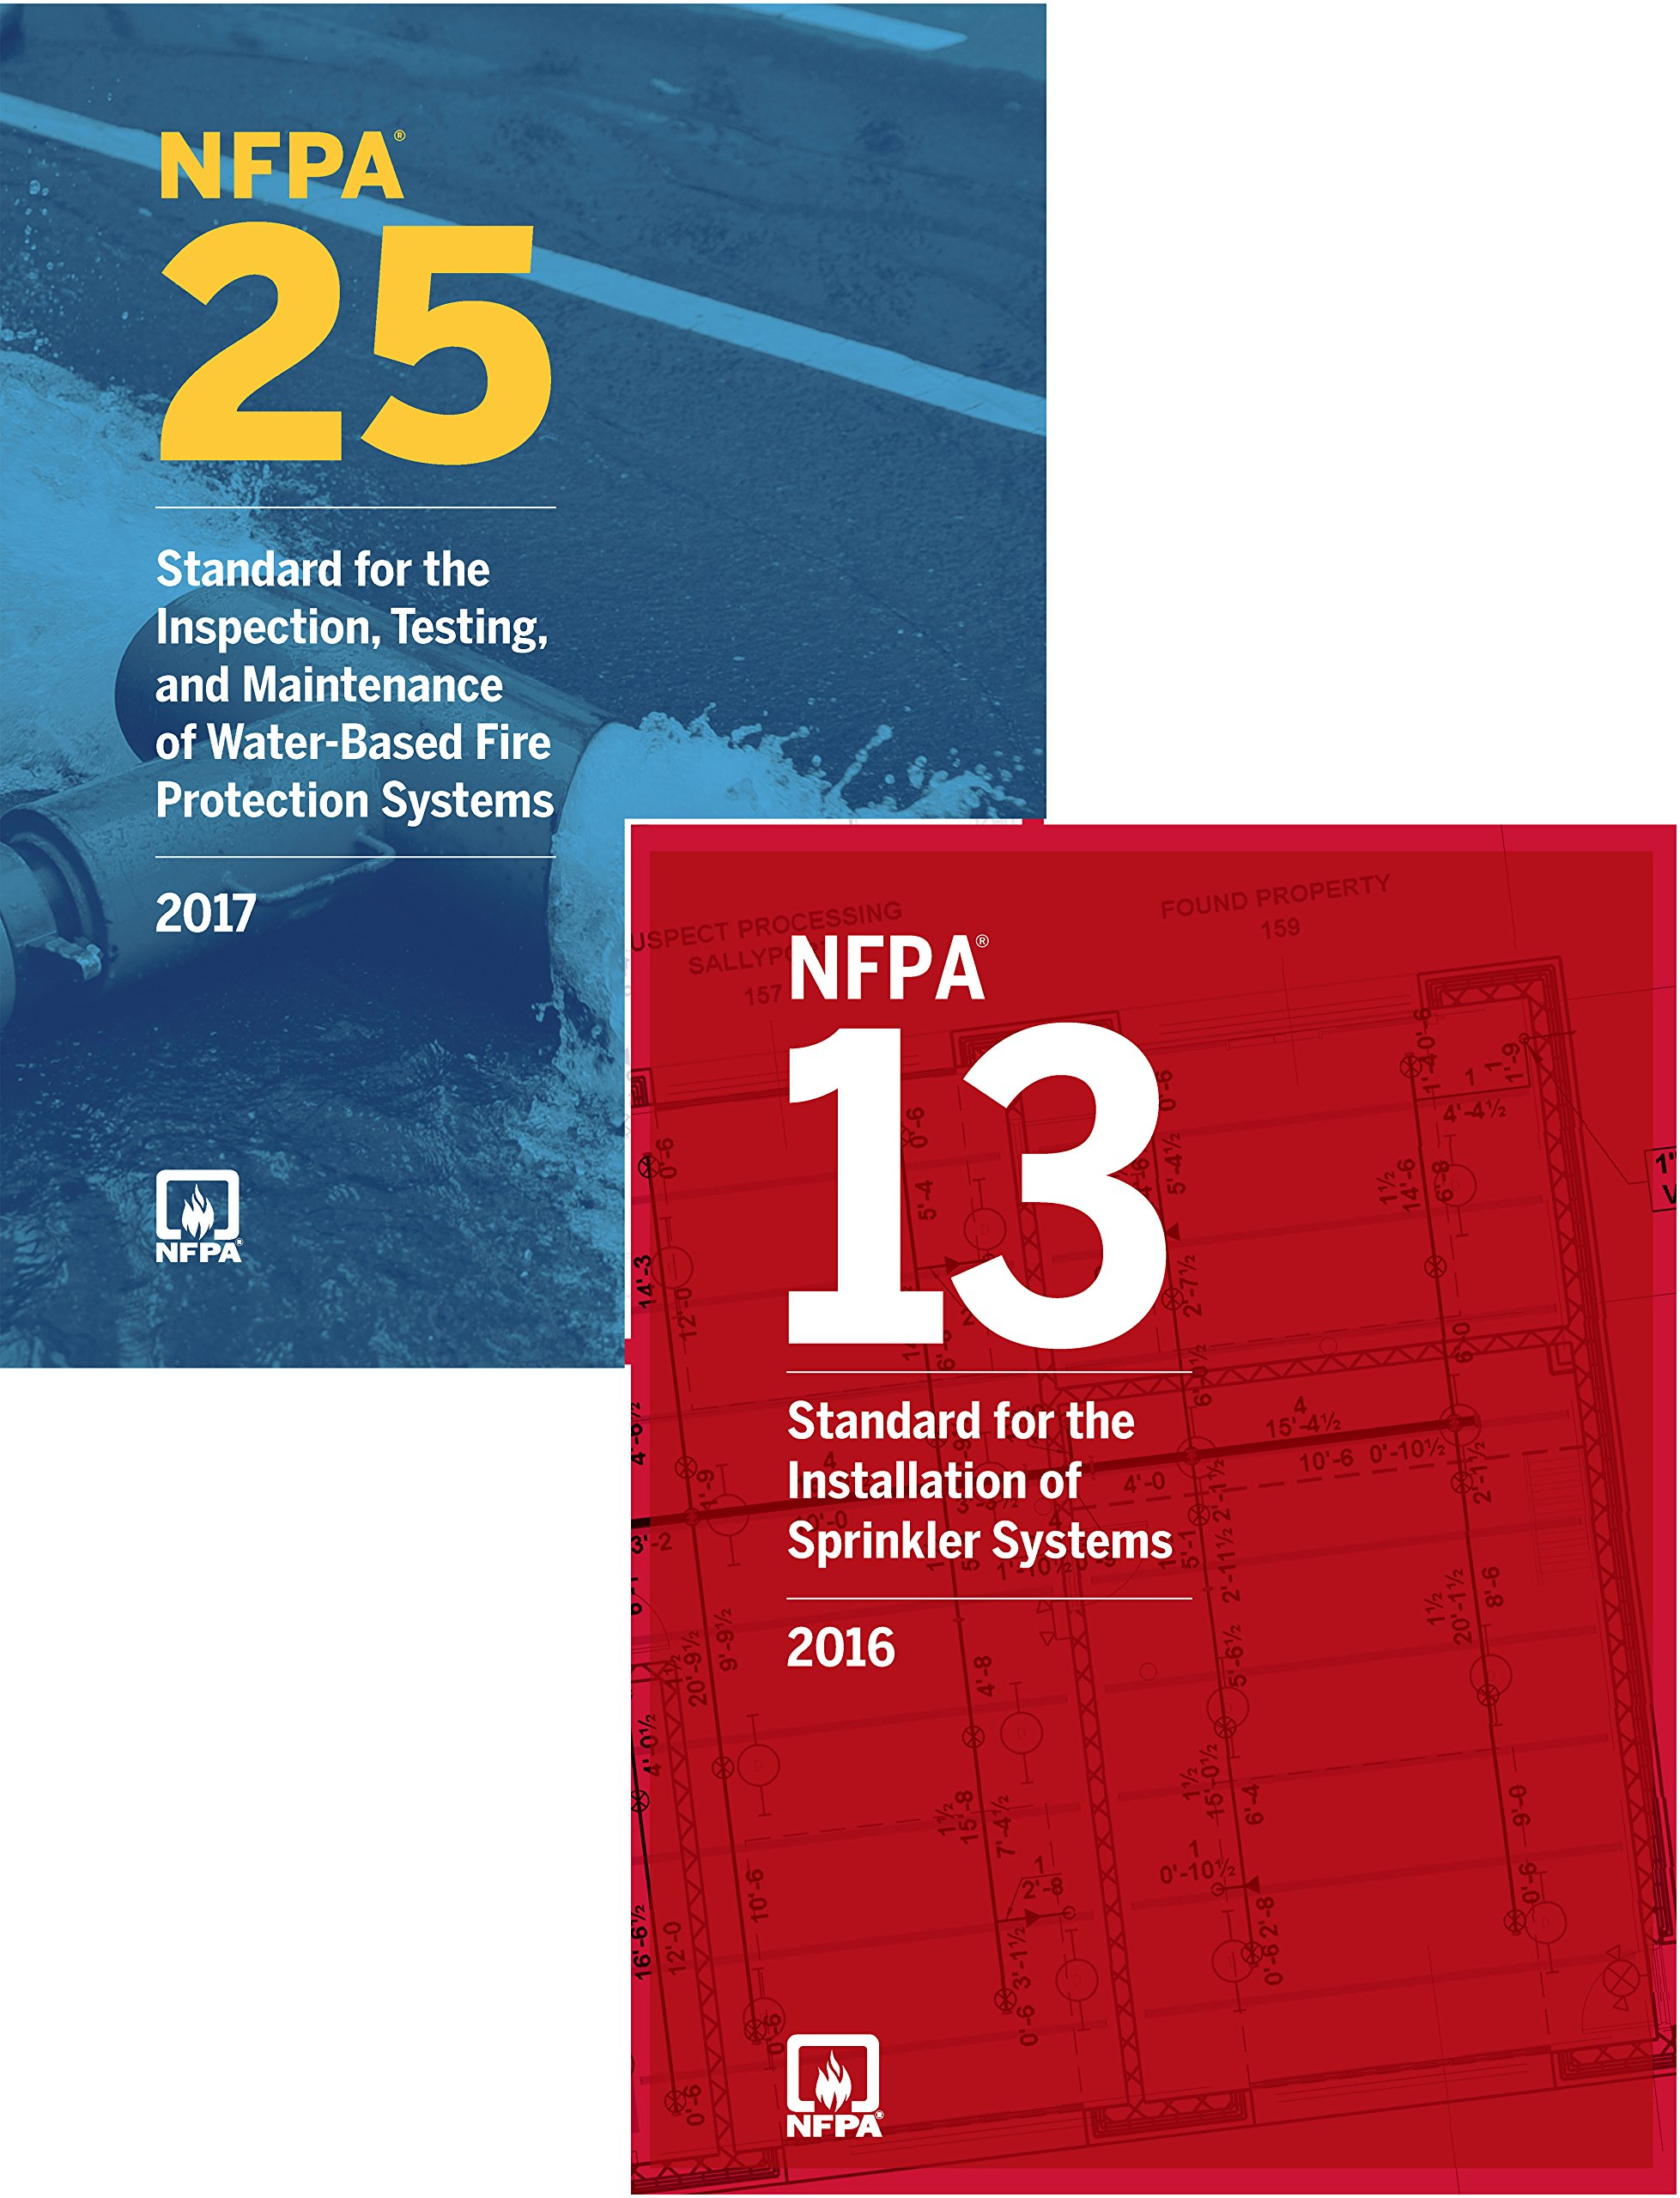 nfpa 13 free download full version